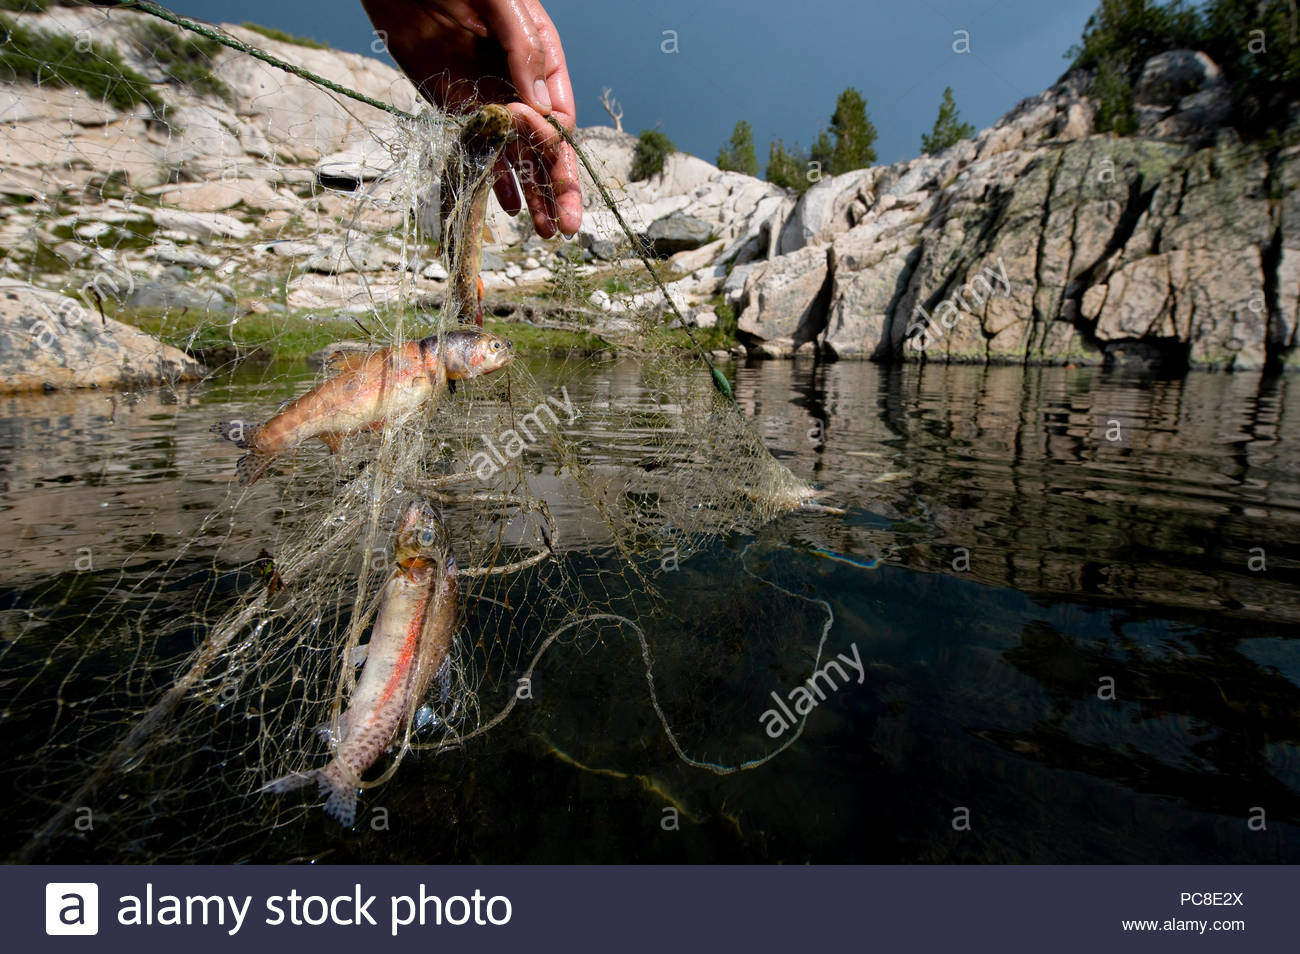 A biologist uses a net to catch trout at Kings Canyon National Park. - Stock Image